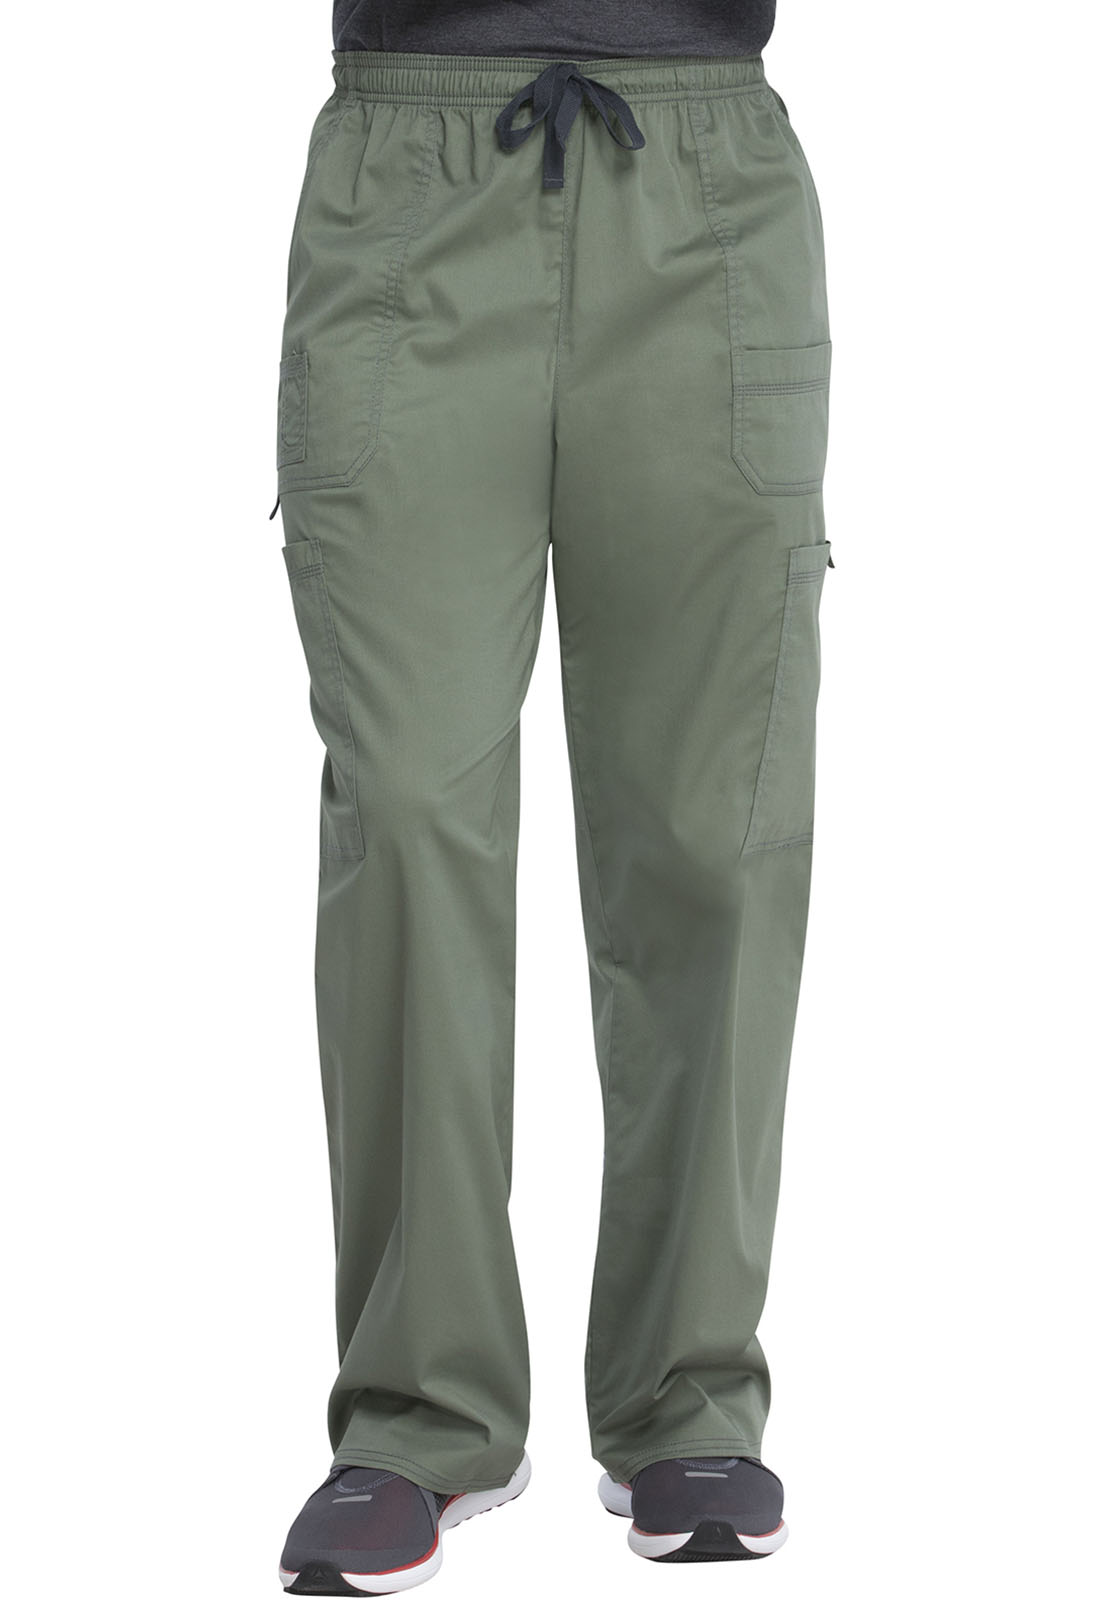 9d71cb183a5 Gen Flex Men's Drawstring Cargo Pant in Olive 81003-OLIZ from ...